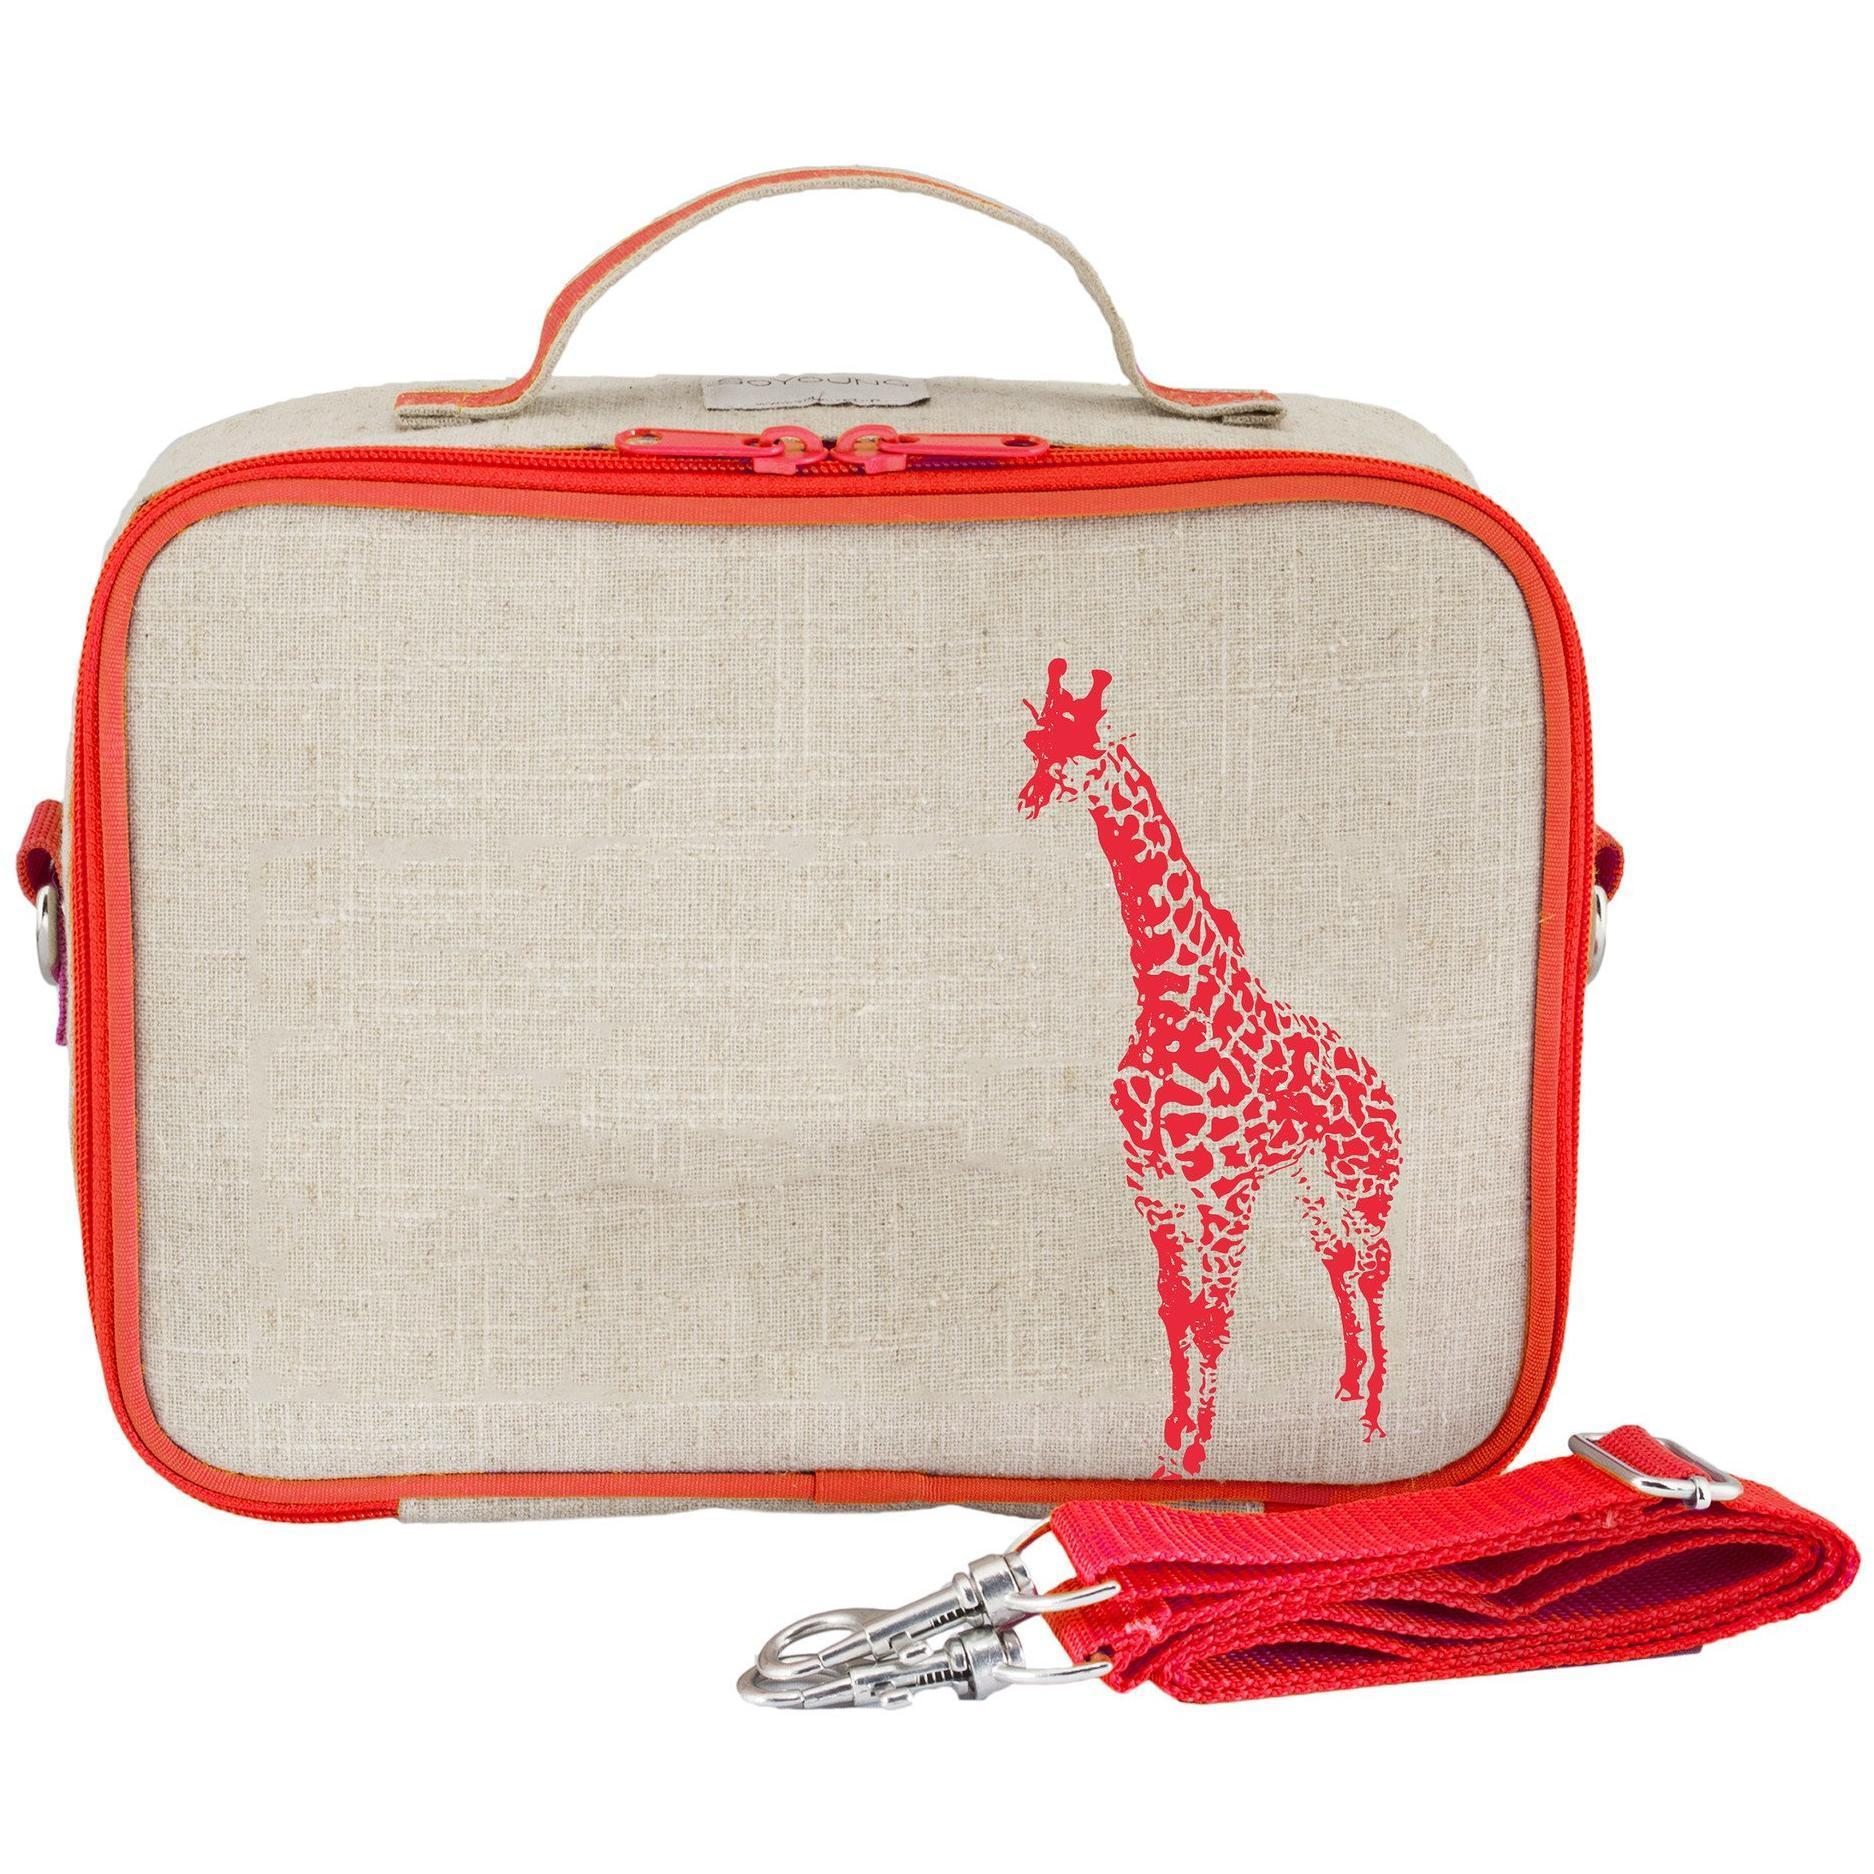 Orange Giraffe Lunchbox - SoYoung - Hugs For Kids